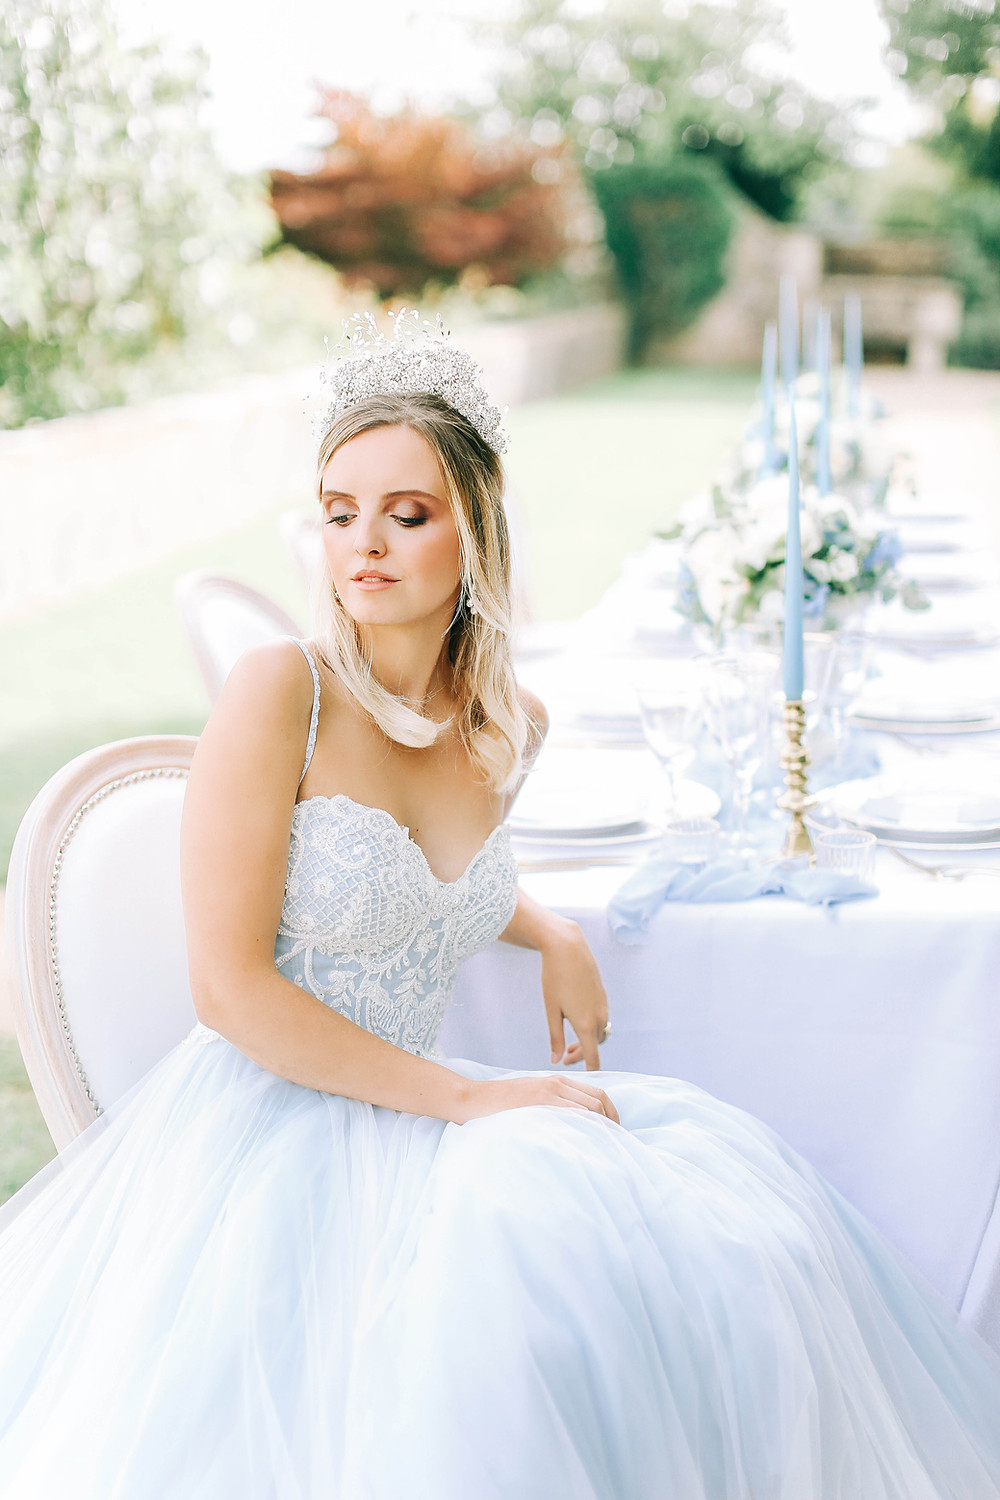 a close up of a tiara Bridal headpiece from Abigail Grace bridal accessorise on bride at hamswell house bath